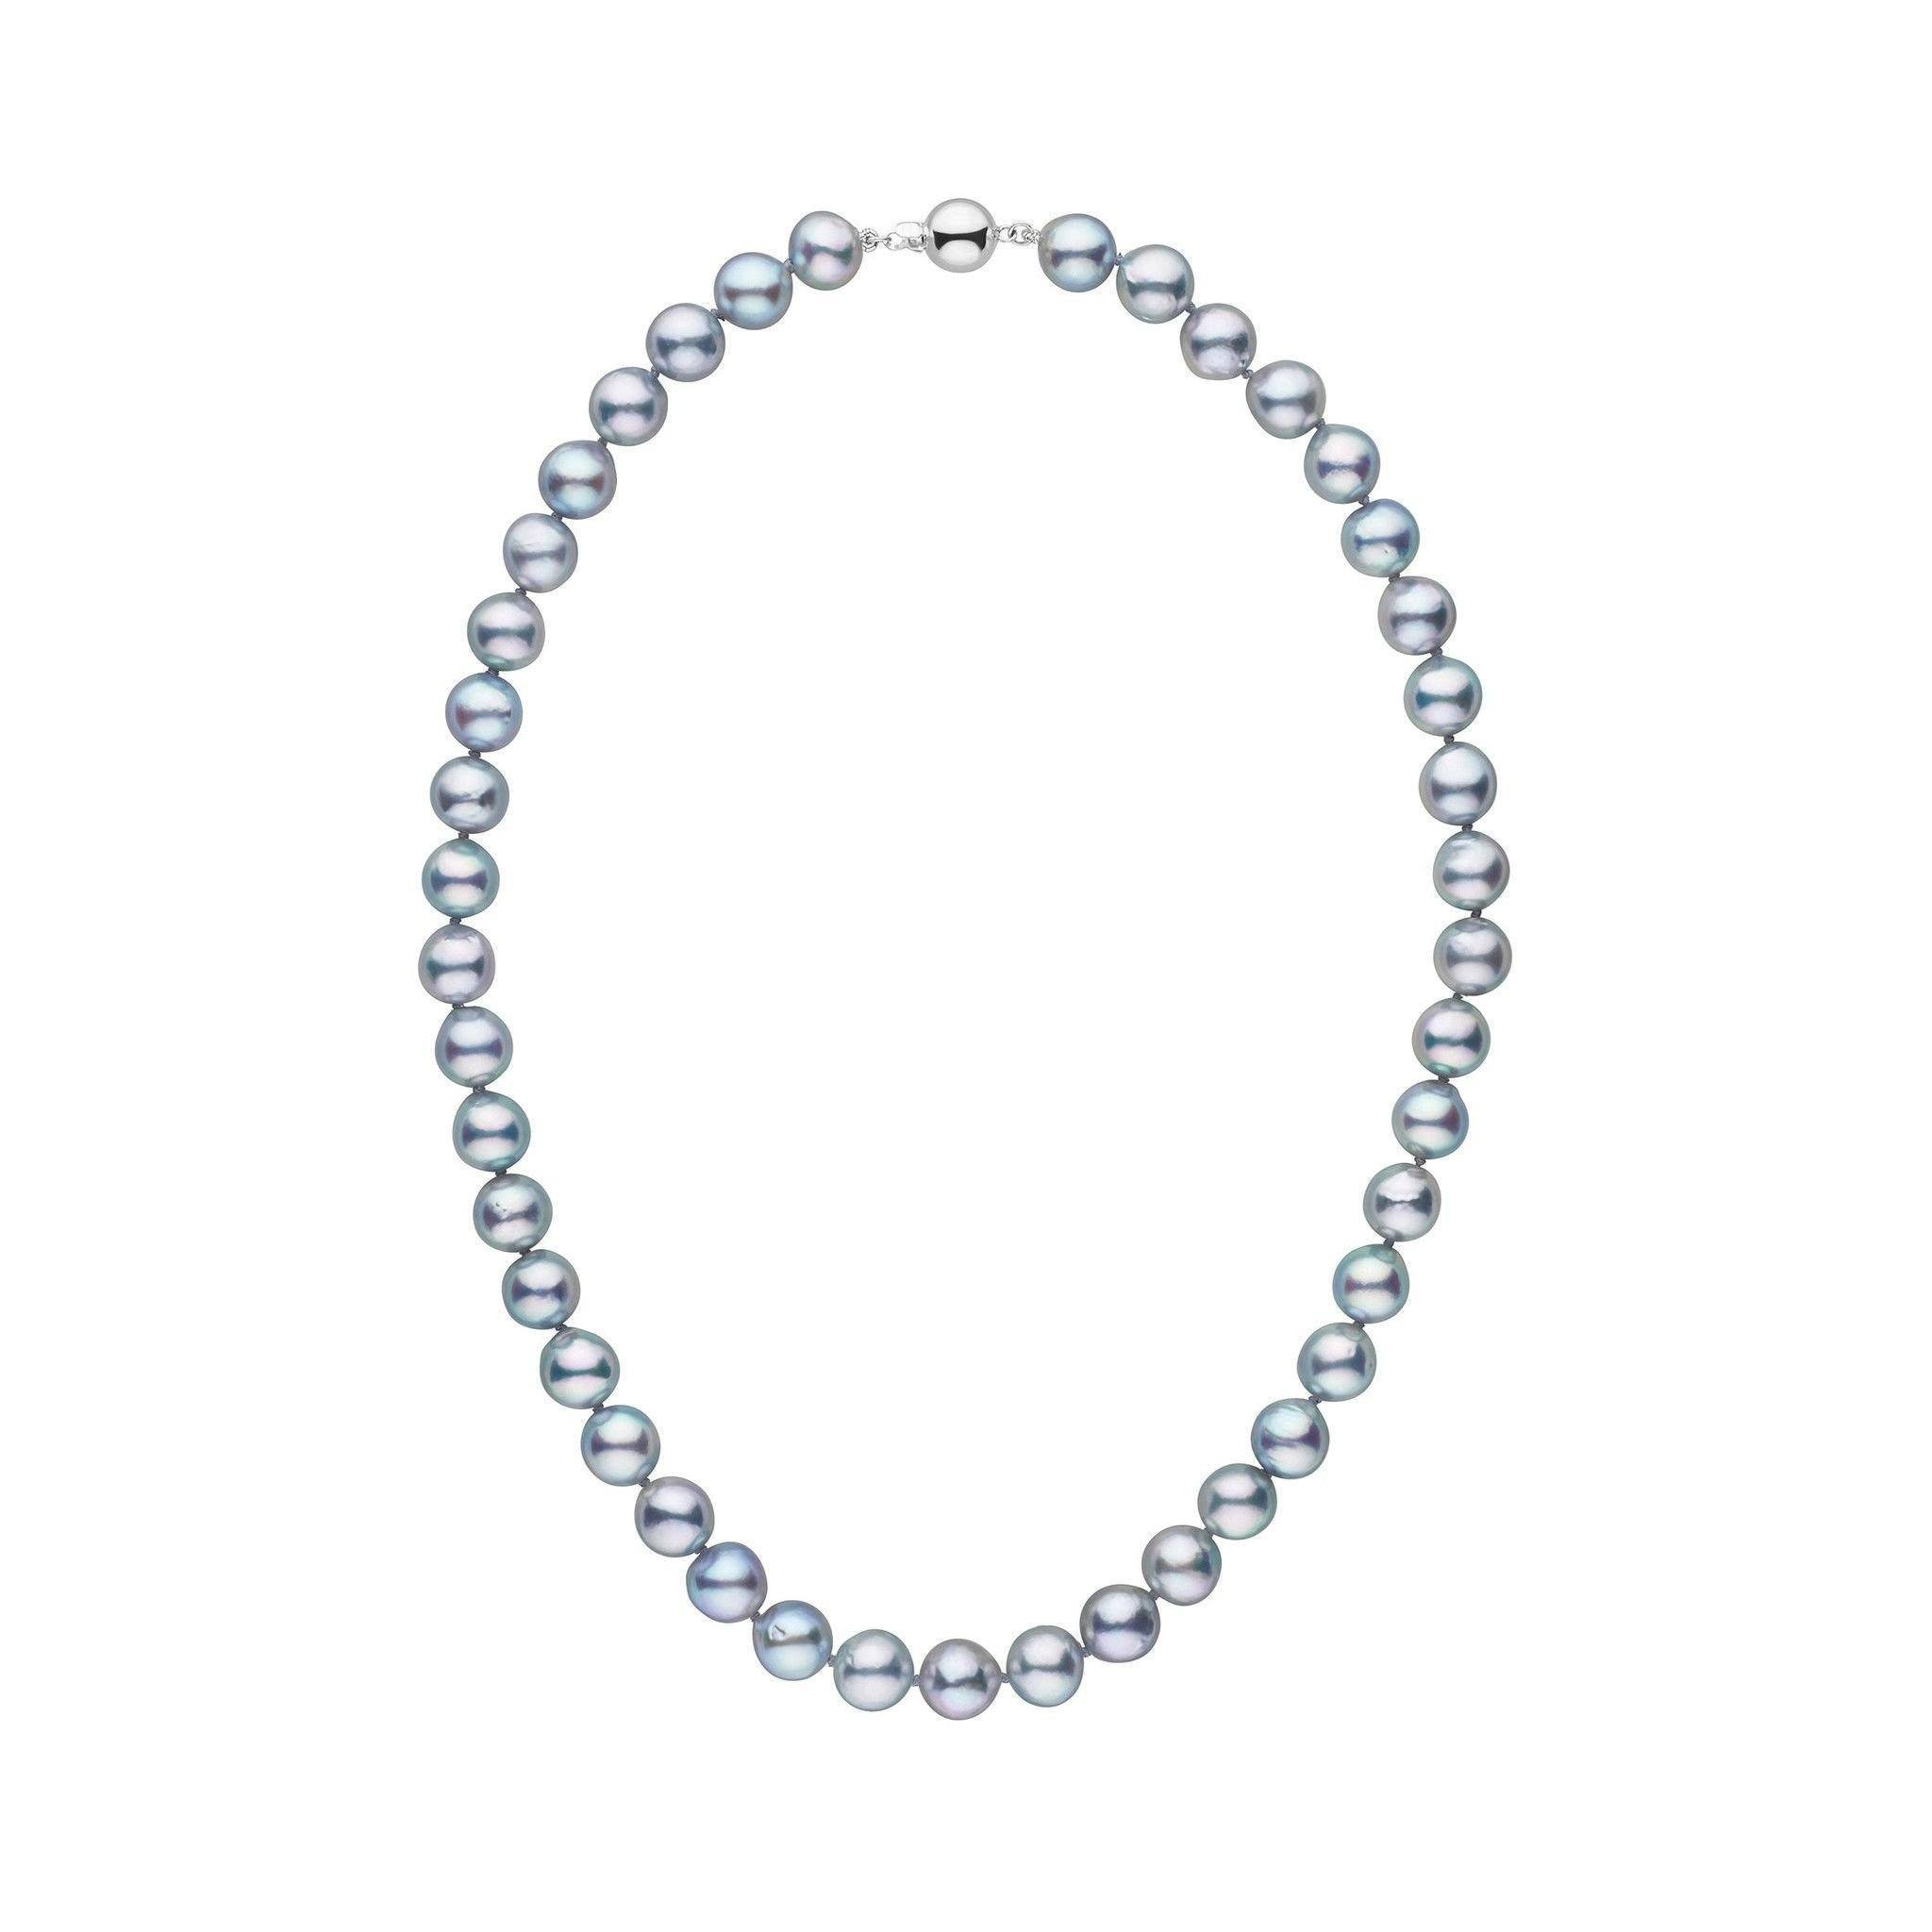 8.0-8.5 mm 16 Inch Silver-Blue Akoya Baroque Pearl Necklace